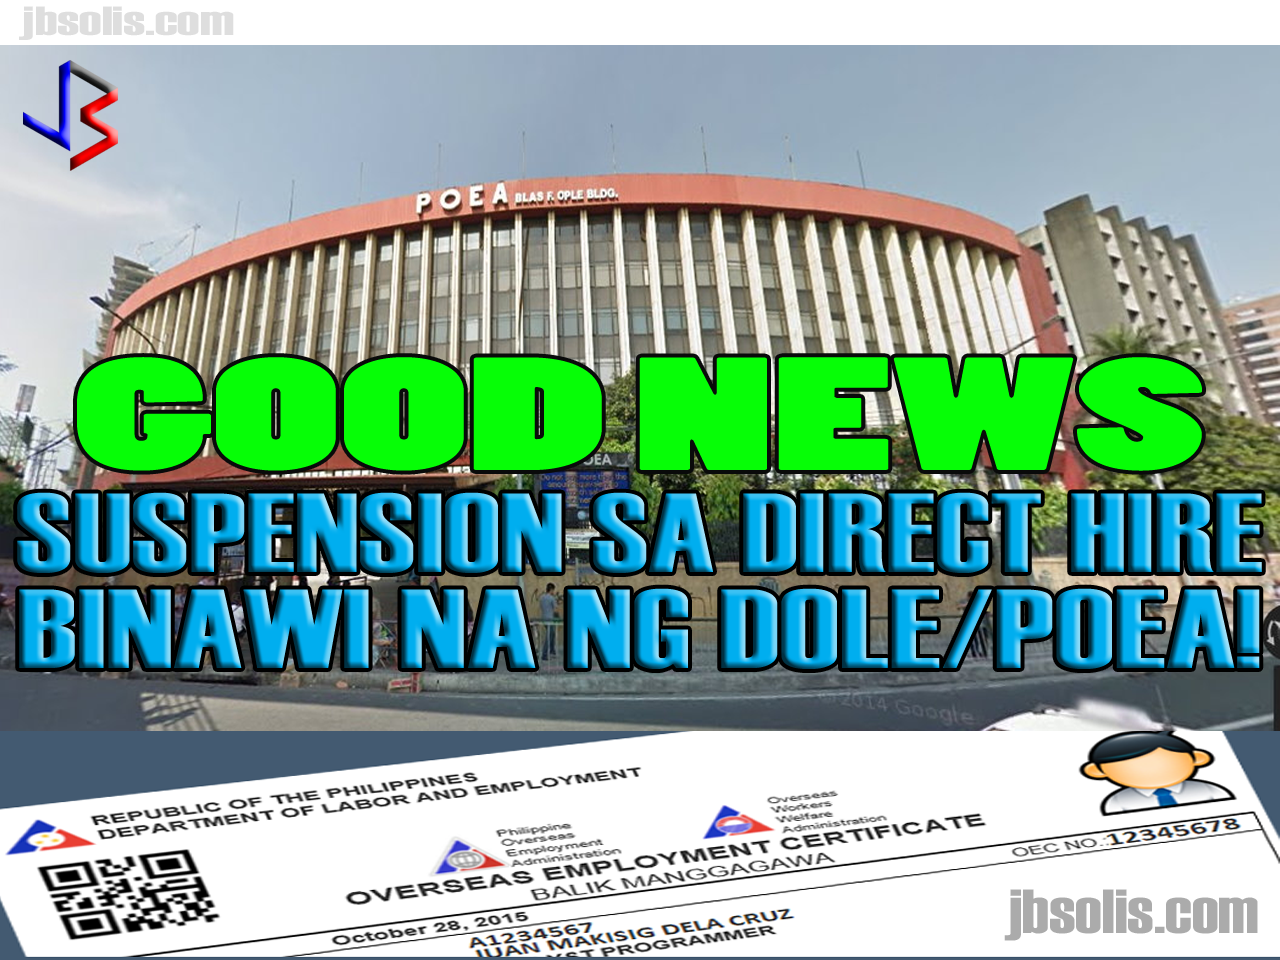 "A number of OFWs and employers abroad were shocked when a complete suspension on the deployment and application of ""Direct Hiring"" for OFWs was announced last April 25, 2017. This was effected by the complete stopping of OEC issuance for all Directly-Hired OFWs.  The reason for the ban was the discovery of a money-making scheme within the POEA where employees within the agency are abusing the strict rules on Dirict Hiring to gain ill-gotten money. It was discovered that anyone abroad can ""directly hire"" a Filipino and bypassing the POEA 2016 Revised Rules and Regulation on the Recruitment and Deployment of OFWs. In exchange for P15,000 to P17,000, these insiders can provide the necessary clearances to ""directly hire"" Filipinos to work abroad, even without the requirements for exemption to the Direct Hire Ban.  For a time being, the matter was being investigated and the authorities were trying to discover those involved in the scam. However, hundreds, if not thousand, of OFWs who were scheduled to leave were left in limbo as they could not leave the country until the ban has been lifted. Similarly, those who were scheduled to go on vacation to the Philippines decided to reschedule or even cancel their vacation for fear that they may not be able to go back to work. The GOOD NEWS is that Labor Secretary Silvestre Bello III has LIFTED THE SUSPENSION ON DIRECT HIRING! During the China Belt and Road Initiative Summit in Beijing, PCCO ASec. Margaux Uson interviewed Sec. Bello and inquired about the ban on direct hiring. Sec. Bello responded saying that he left a memorandum (dated May 16, 2017) lifting the suspension on direct hiring effective IMMEDIATELY. Direct-hire OFWs are still required to get OECs from POEA, but only until this process is removed, which was also announced by Secretary Bello. See No more OEC!  The reason for lifting the suspension is simple. Sec. Bello explained that the investigation is finished and they already know those who were involved in the scam. He also promised a reorganization in the agency, and reiterated that the purpose of the ban was to protect Filipino workers."